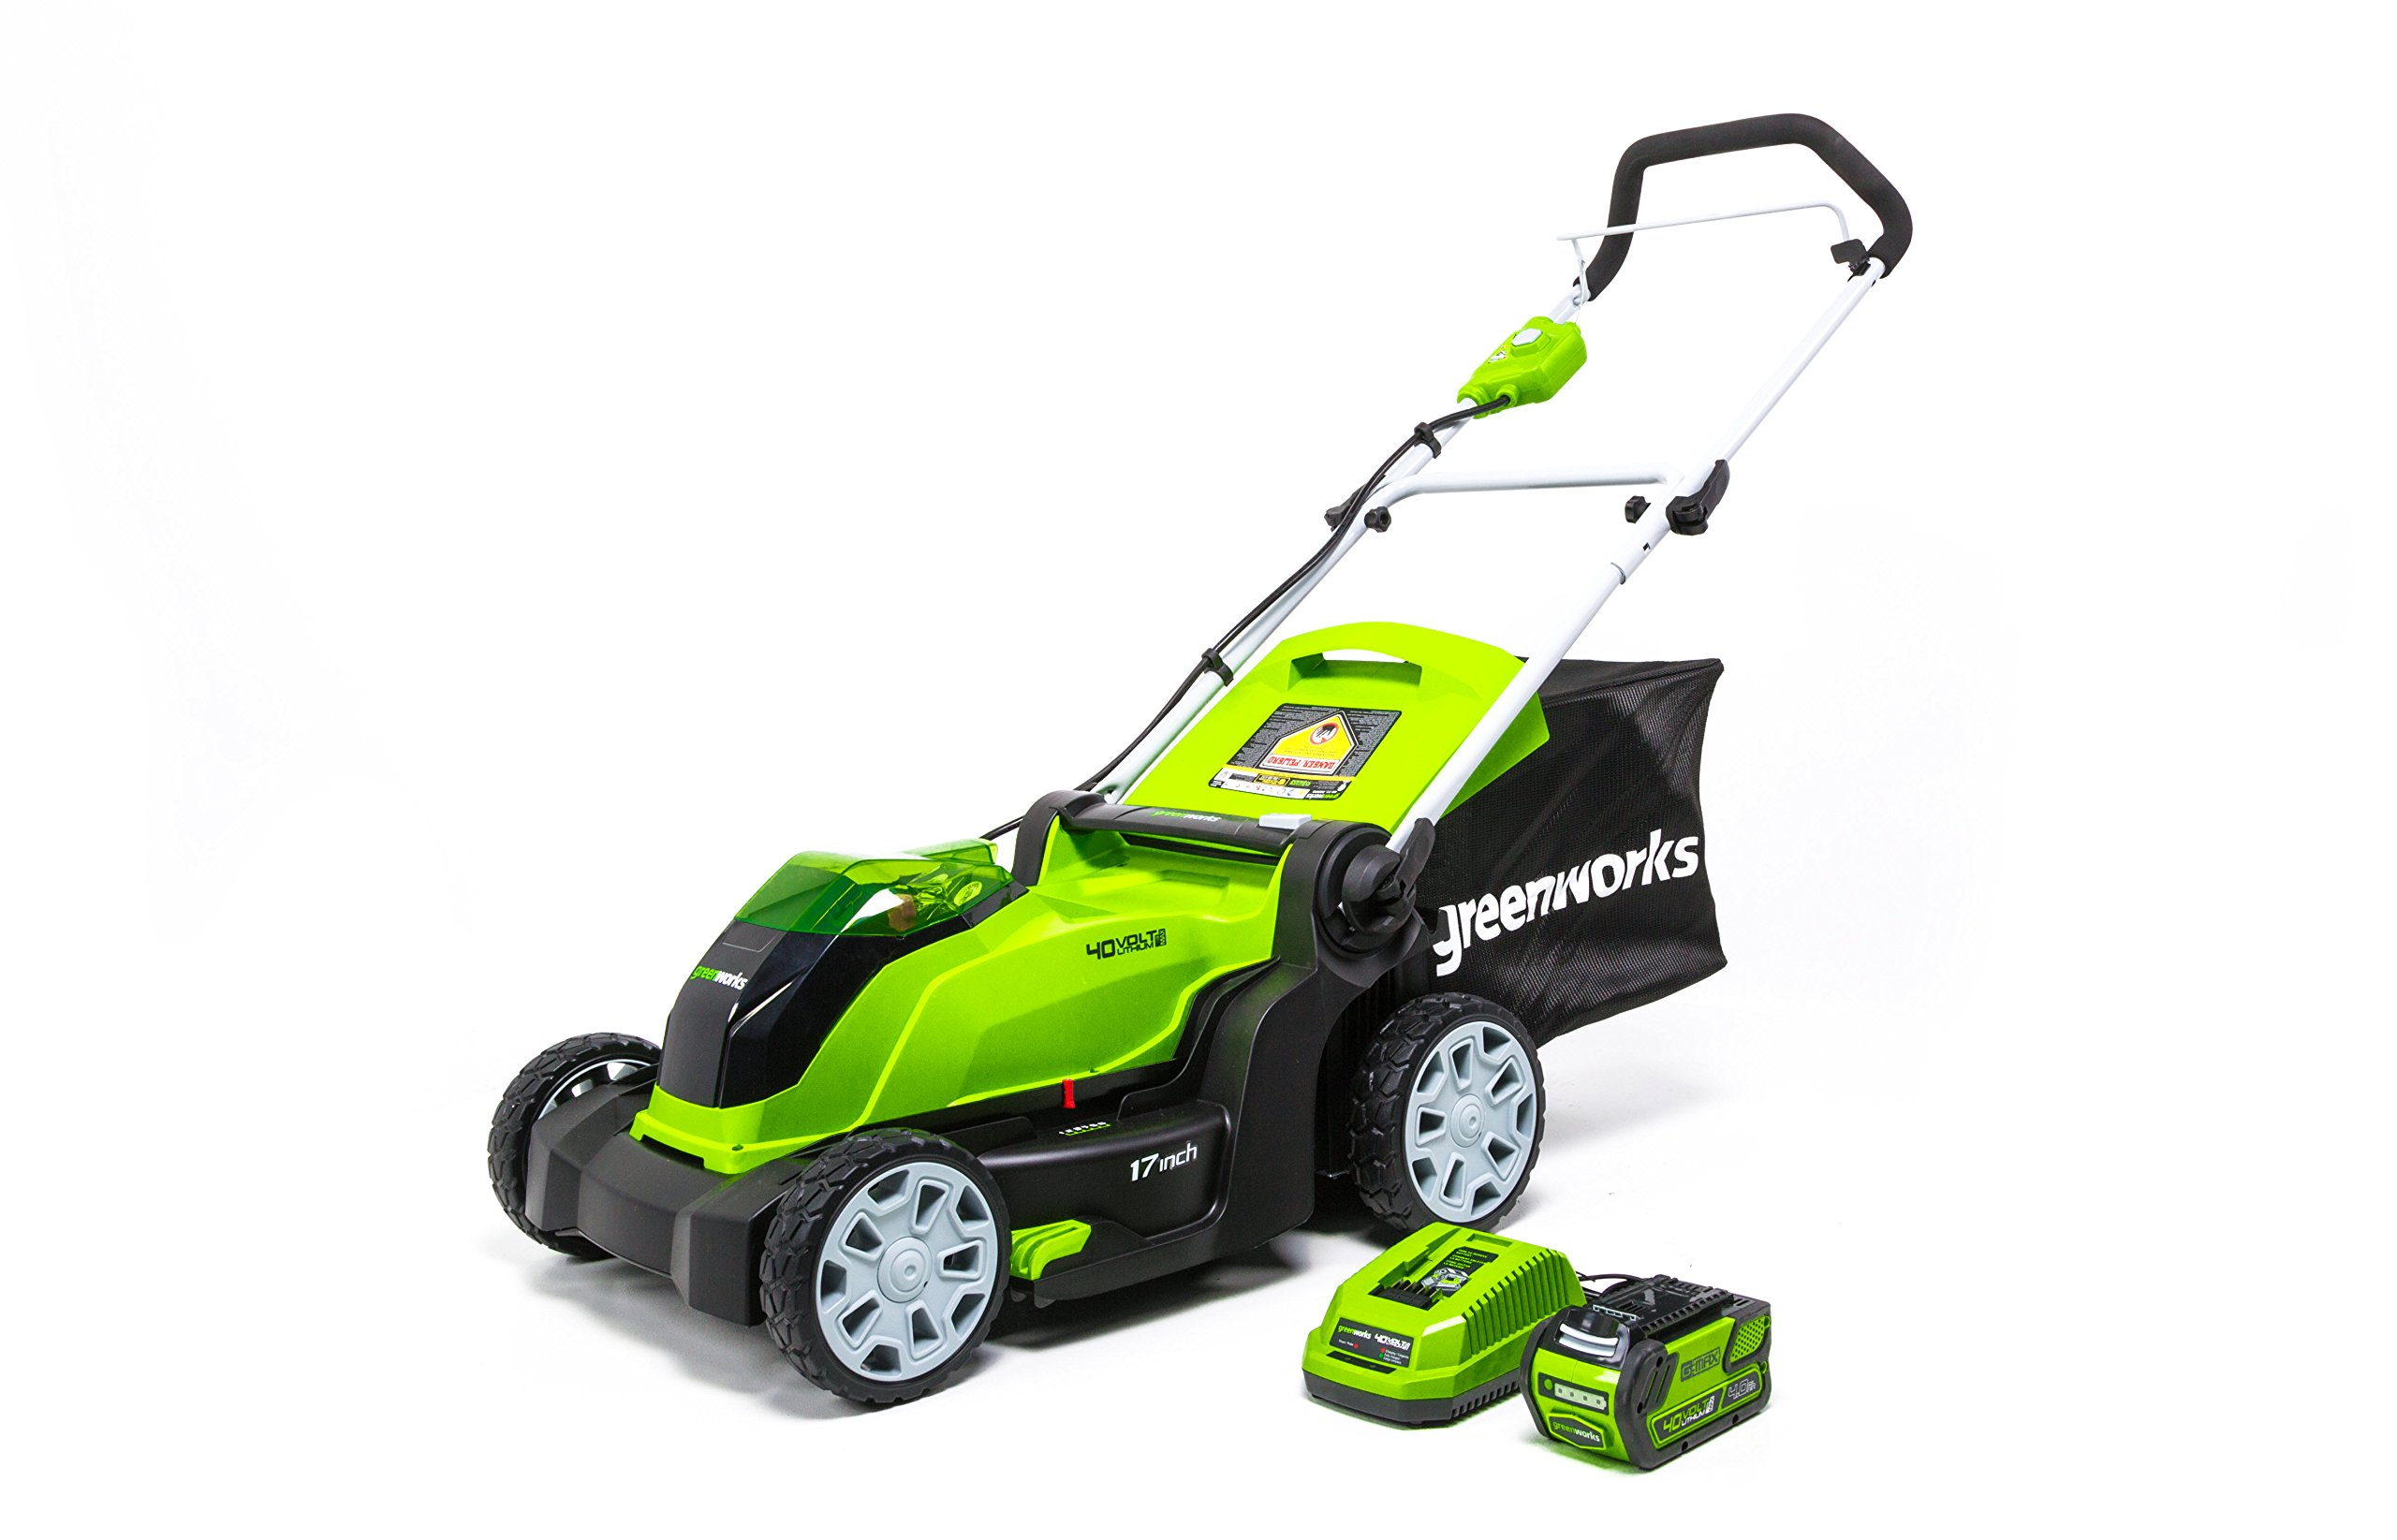 Greenworks 17-Inch 40V Cordless Lawn Mower, 4.0 AH Battery Included MO40B411 by Greenworks